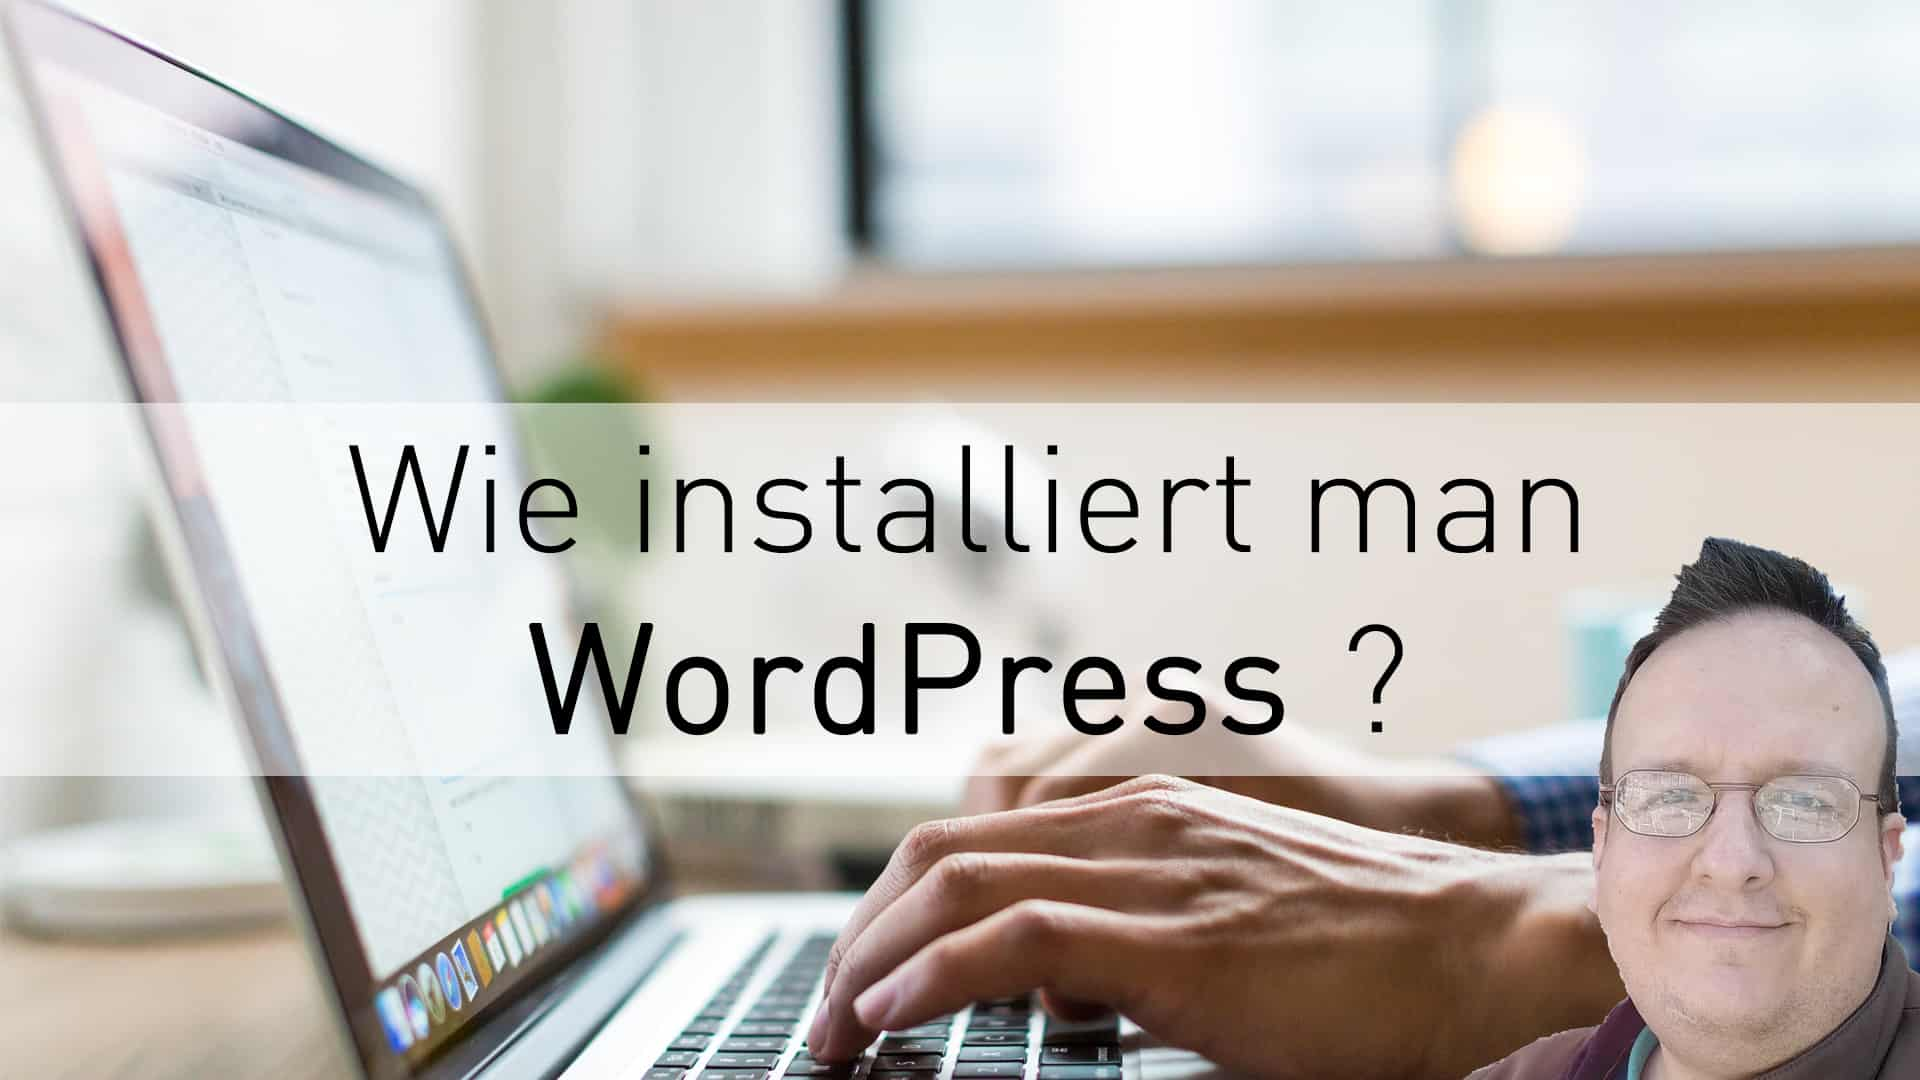 Wie installiert man WordPress?